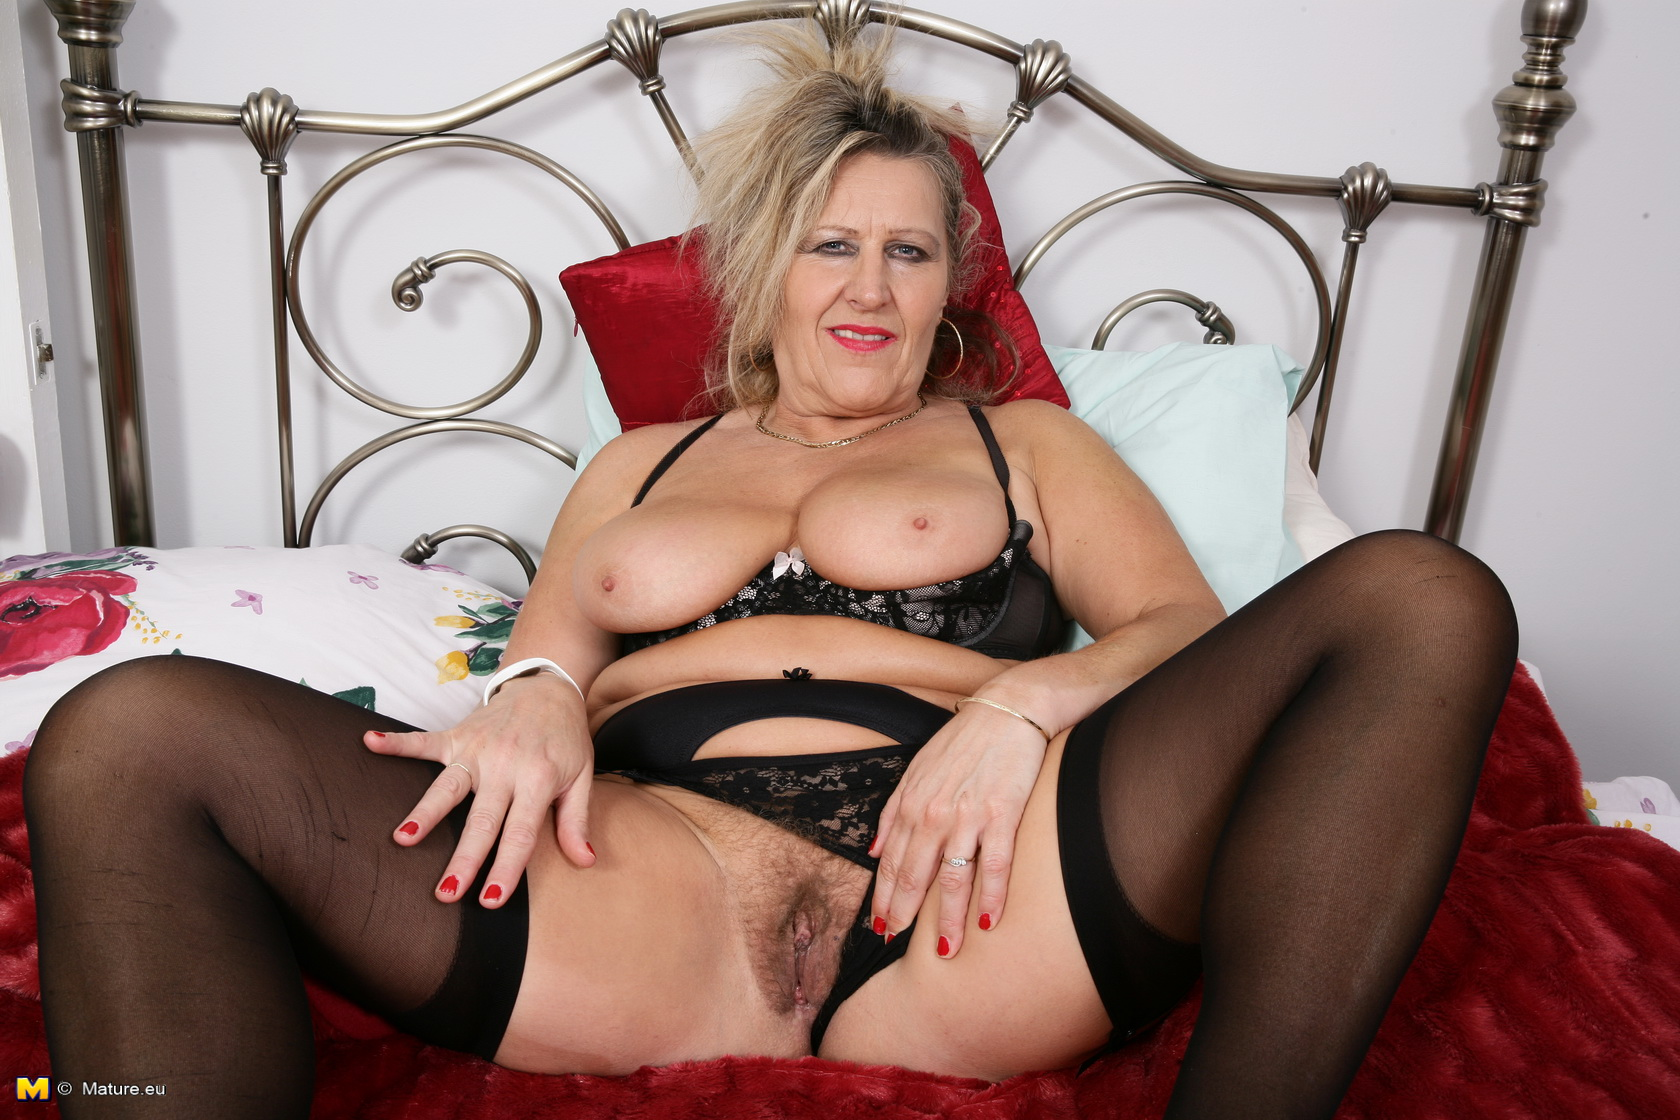 Furry British housewife toying alone